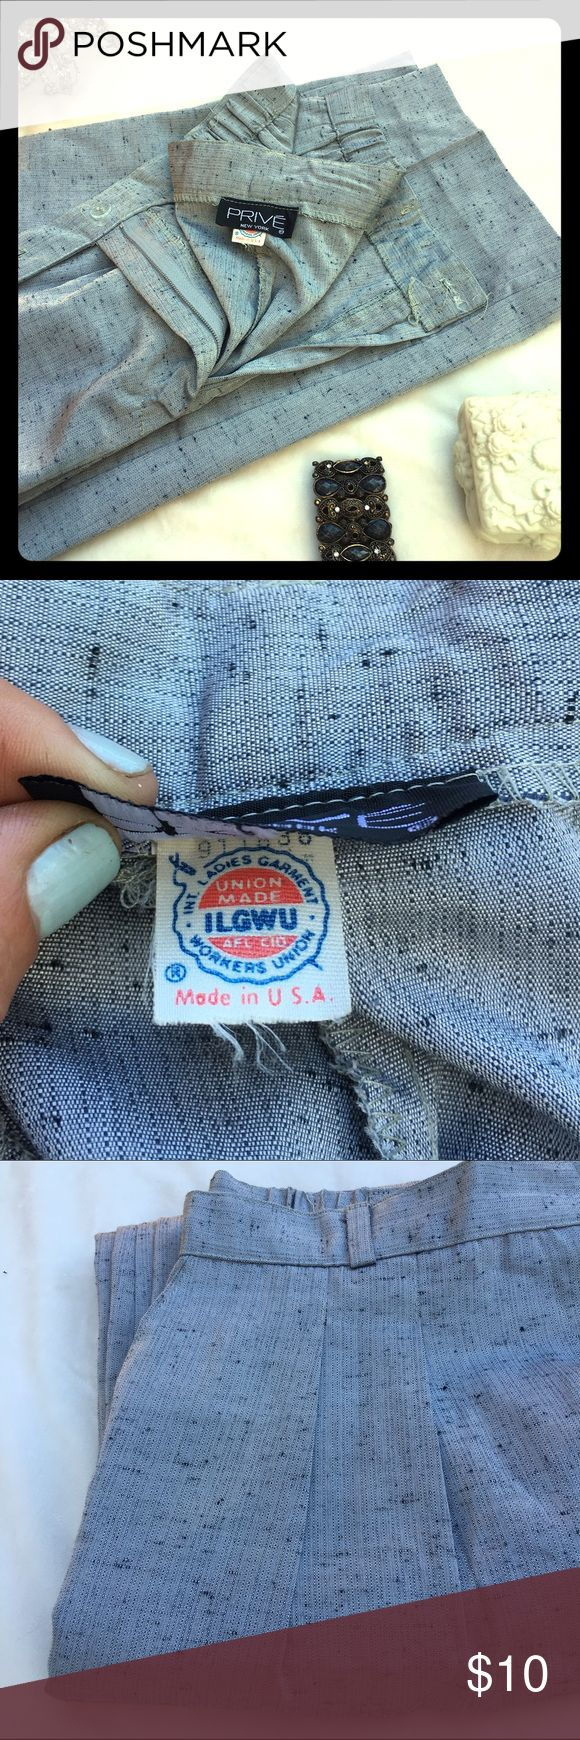 """Pleated Vintage 💌 Vintage pleated slacks made in the USA🇺🇸 by members of the Ladies Garment Workers Union. No size tag. My guess ladies size 14 or 14 petite. Inseam 27"""". More measurements upon request. PRIVE New York Pants"""